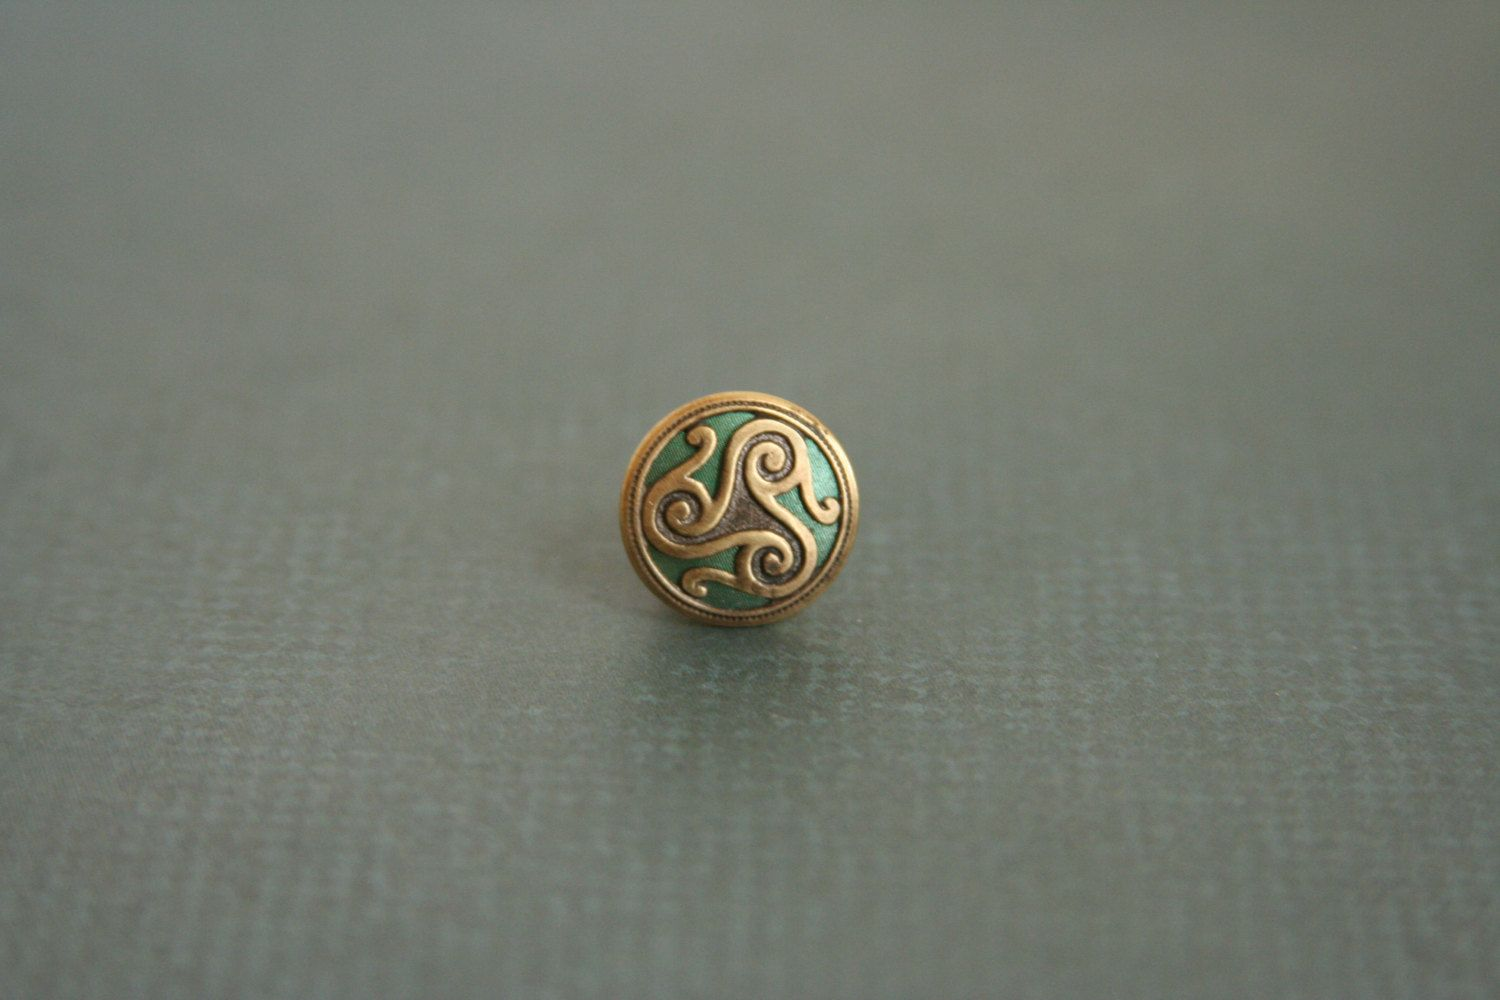 Triskele Tie Tack Triskelion Green Lapel Pin - made with a unique green and brass button by AngleAh on Etsy